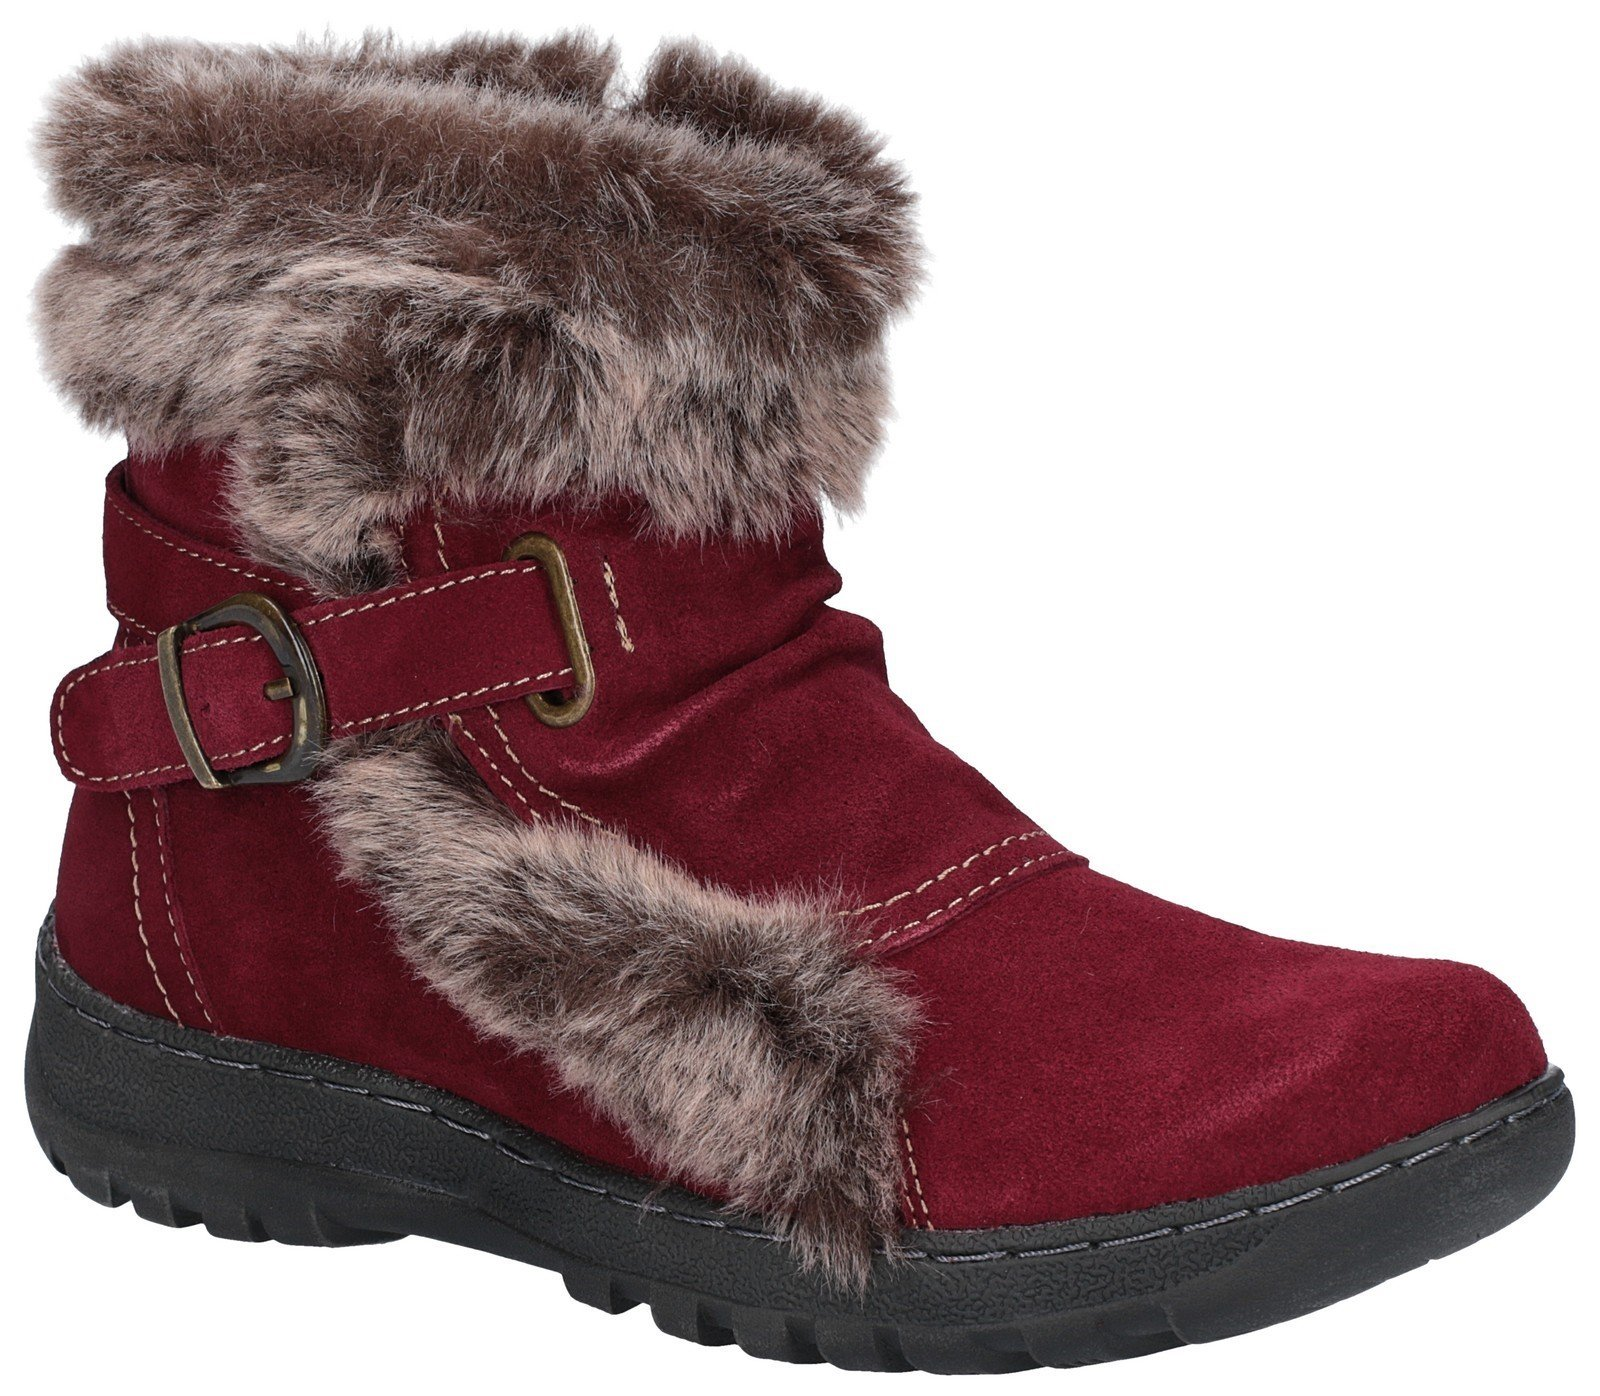 Fleet & Foster Women's Ginny Ankle Boot Brown 27143-45598 - Red 3